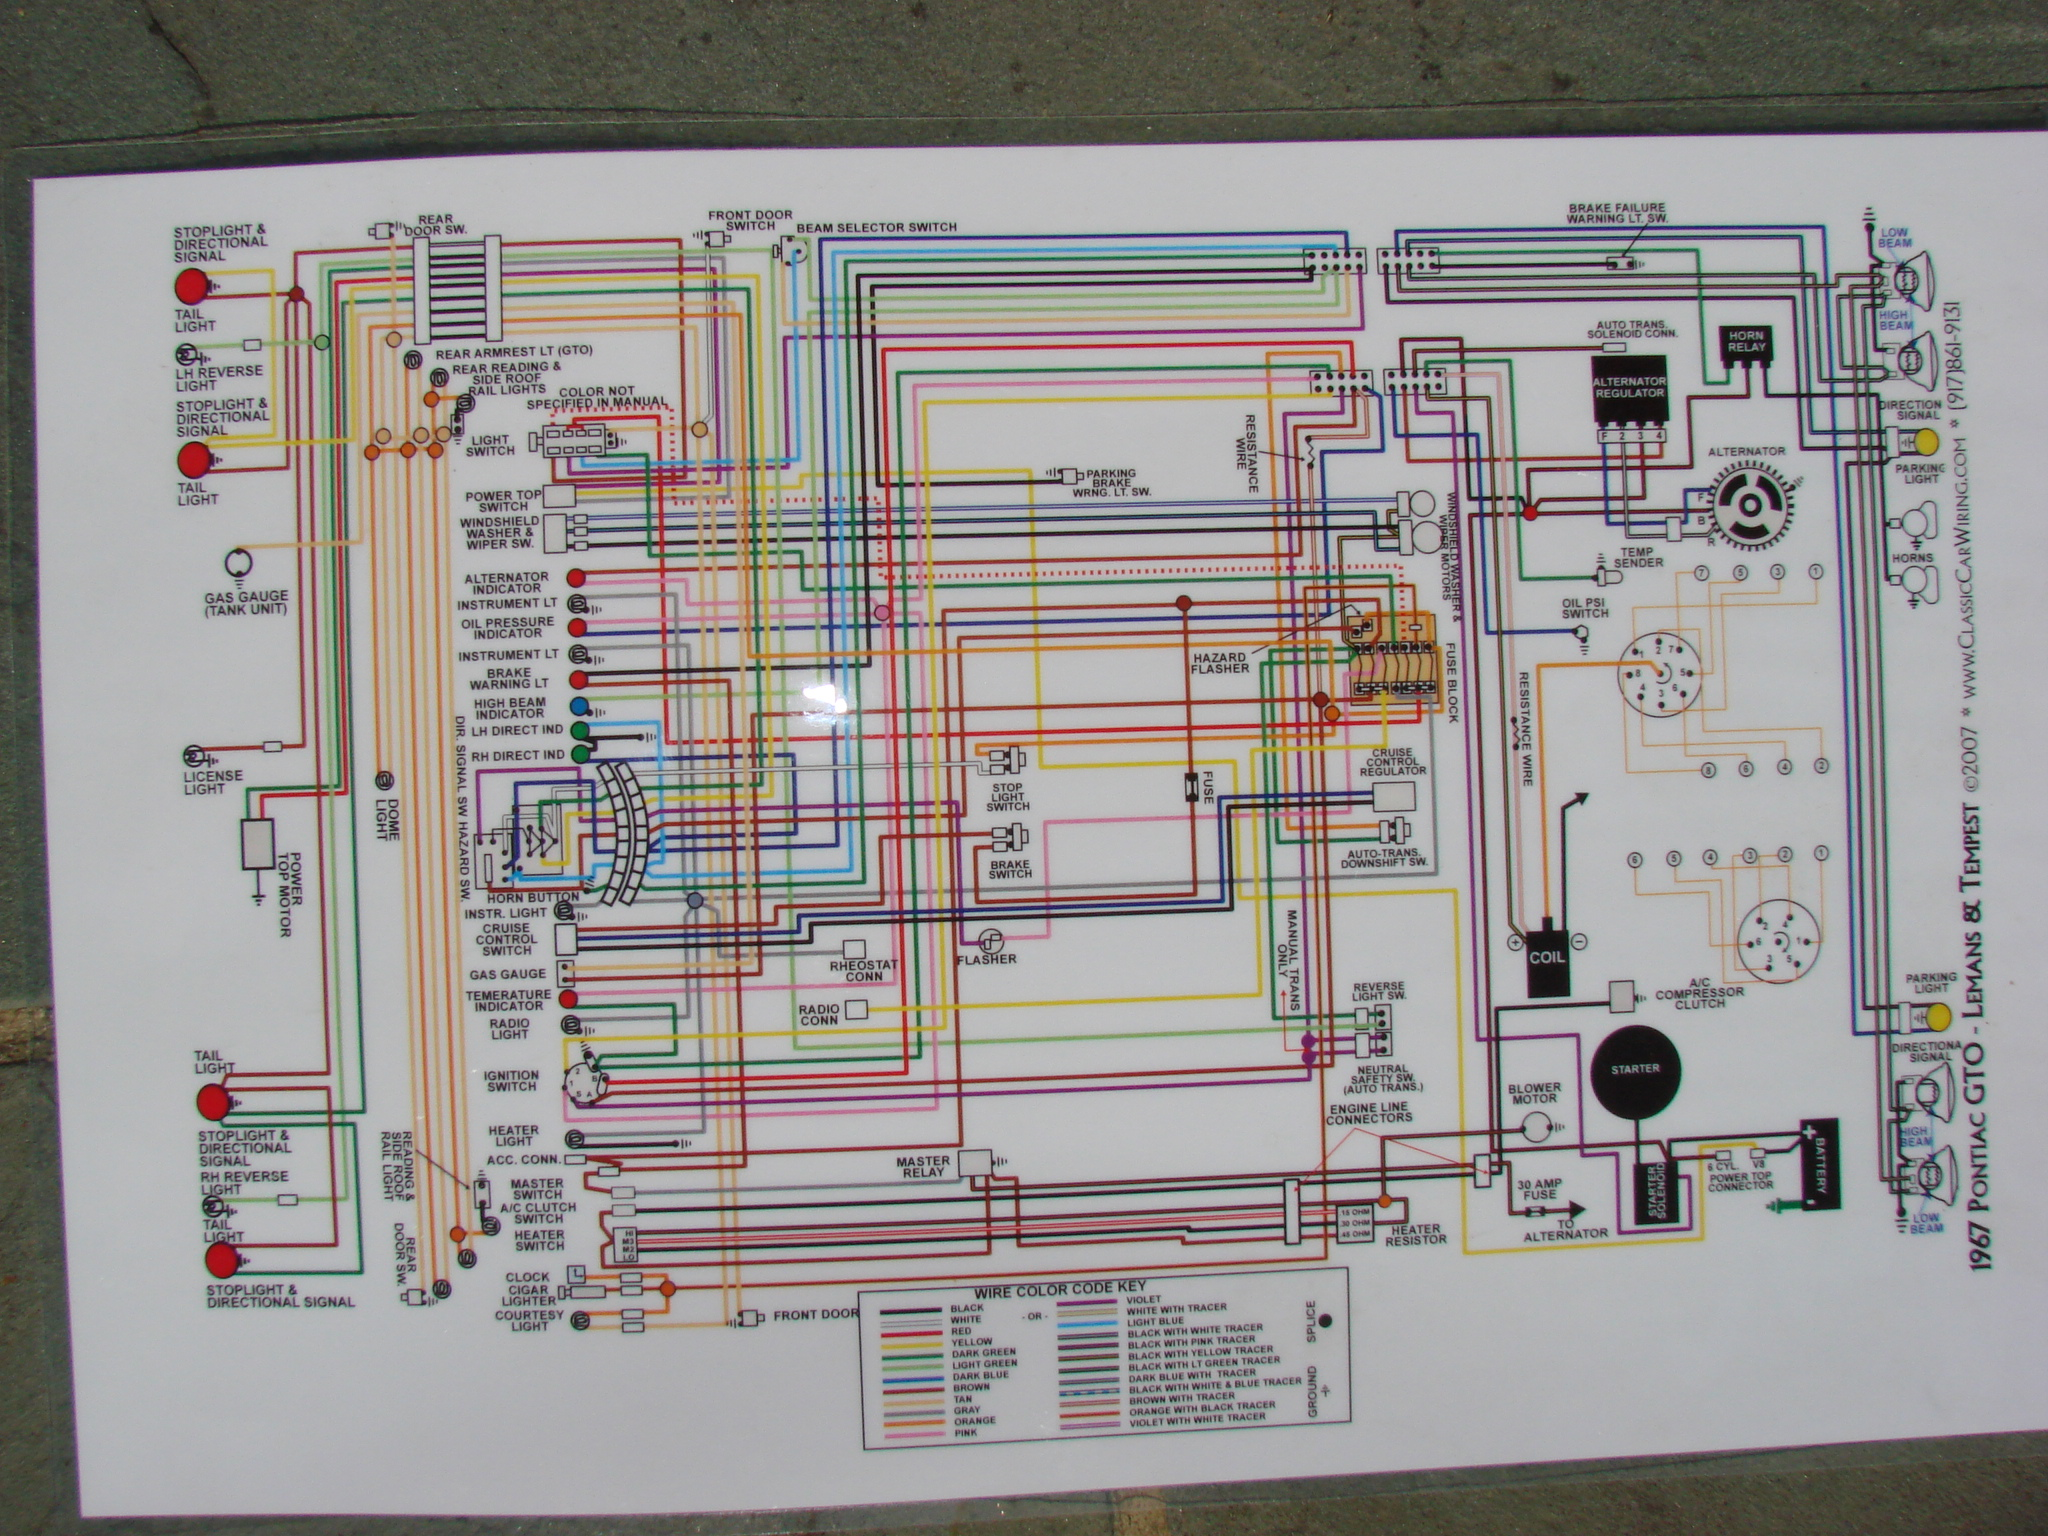 Pontiac Gto Ignition Switch Wiring Diagram Get Free Image About